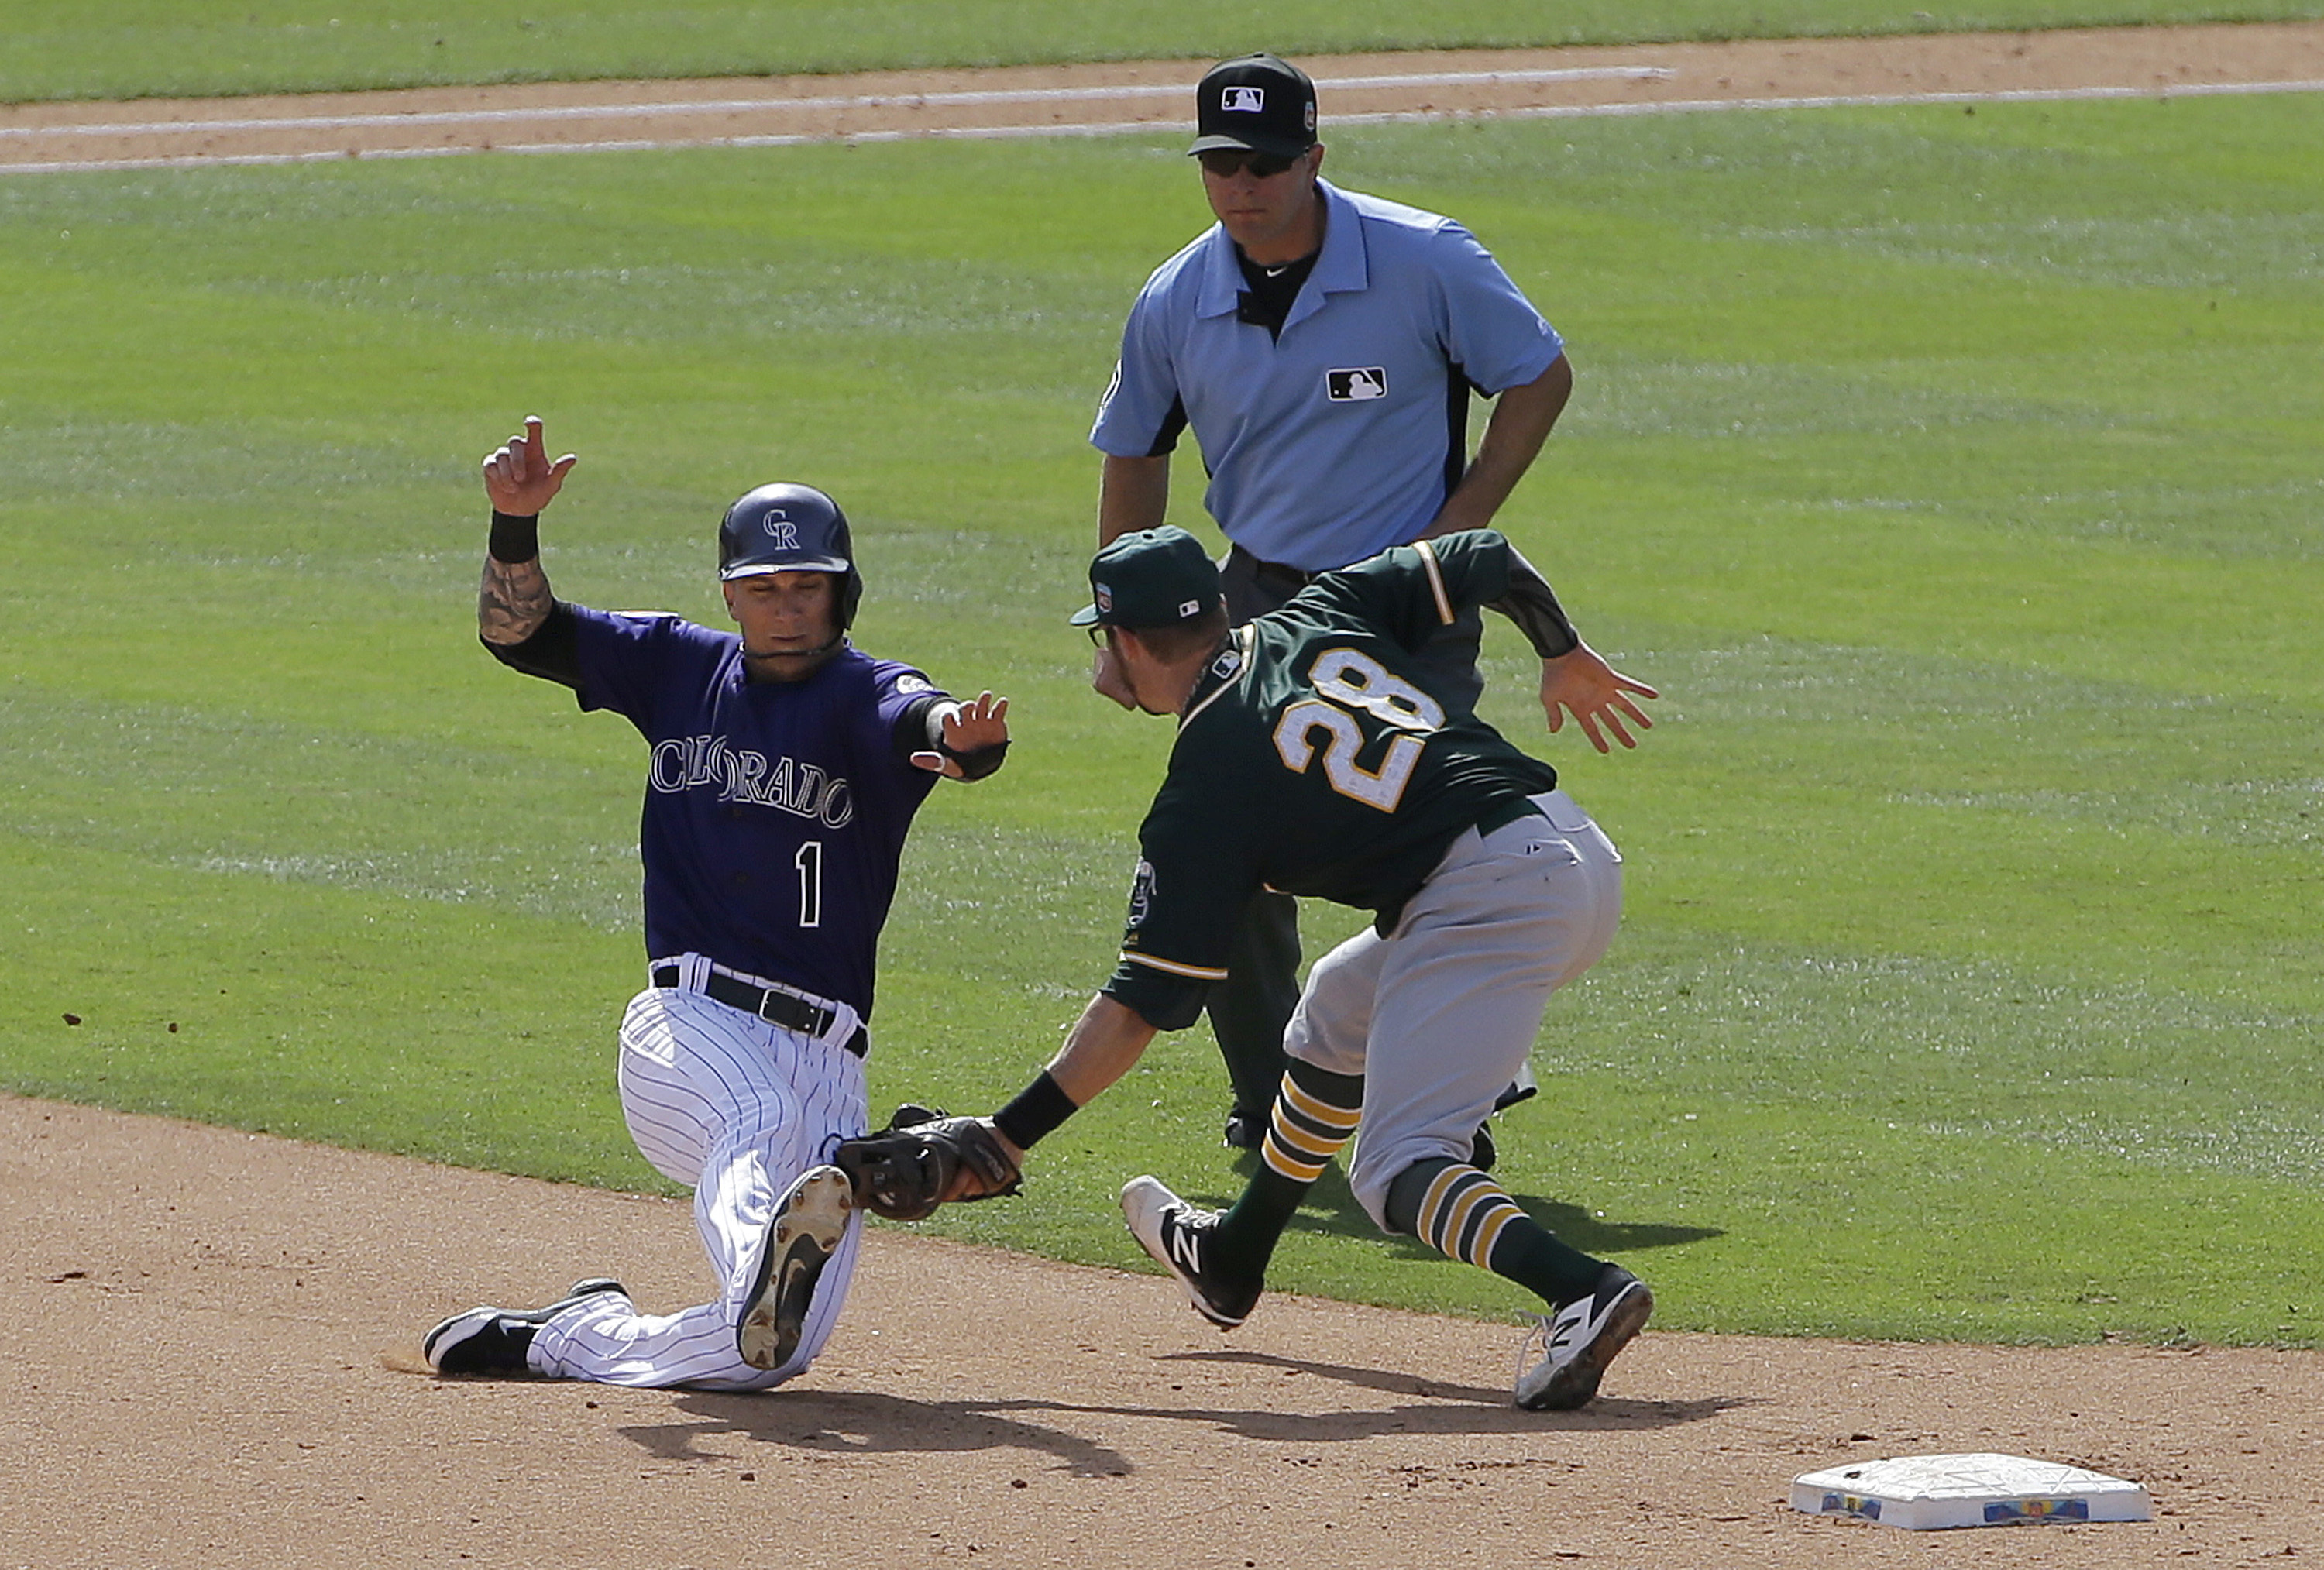 Colorado Rockies' Brandon Barnes (1) is tagged out by Oakland Athletics second baseman Eric Sogard (28) trying to steal second base during the fourth inning of a spring training baseball game in Scottsdale, Ariz., Tuesday, March 15, 2016. (AP Photo/Jeff C